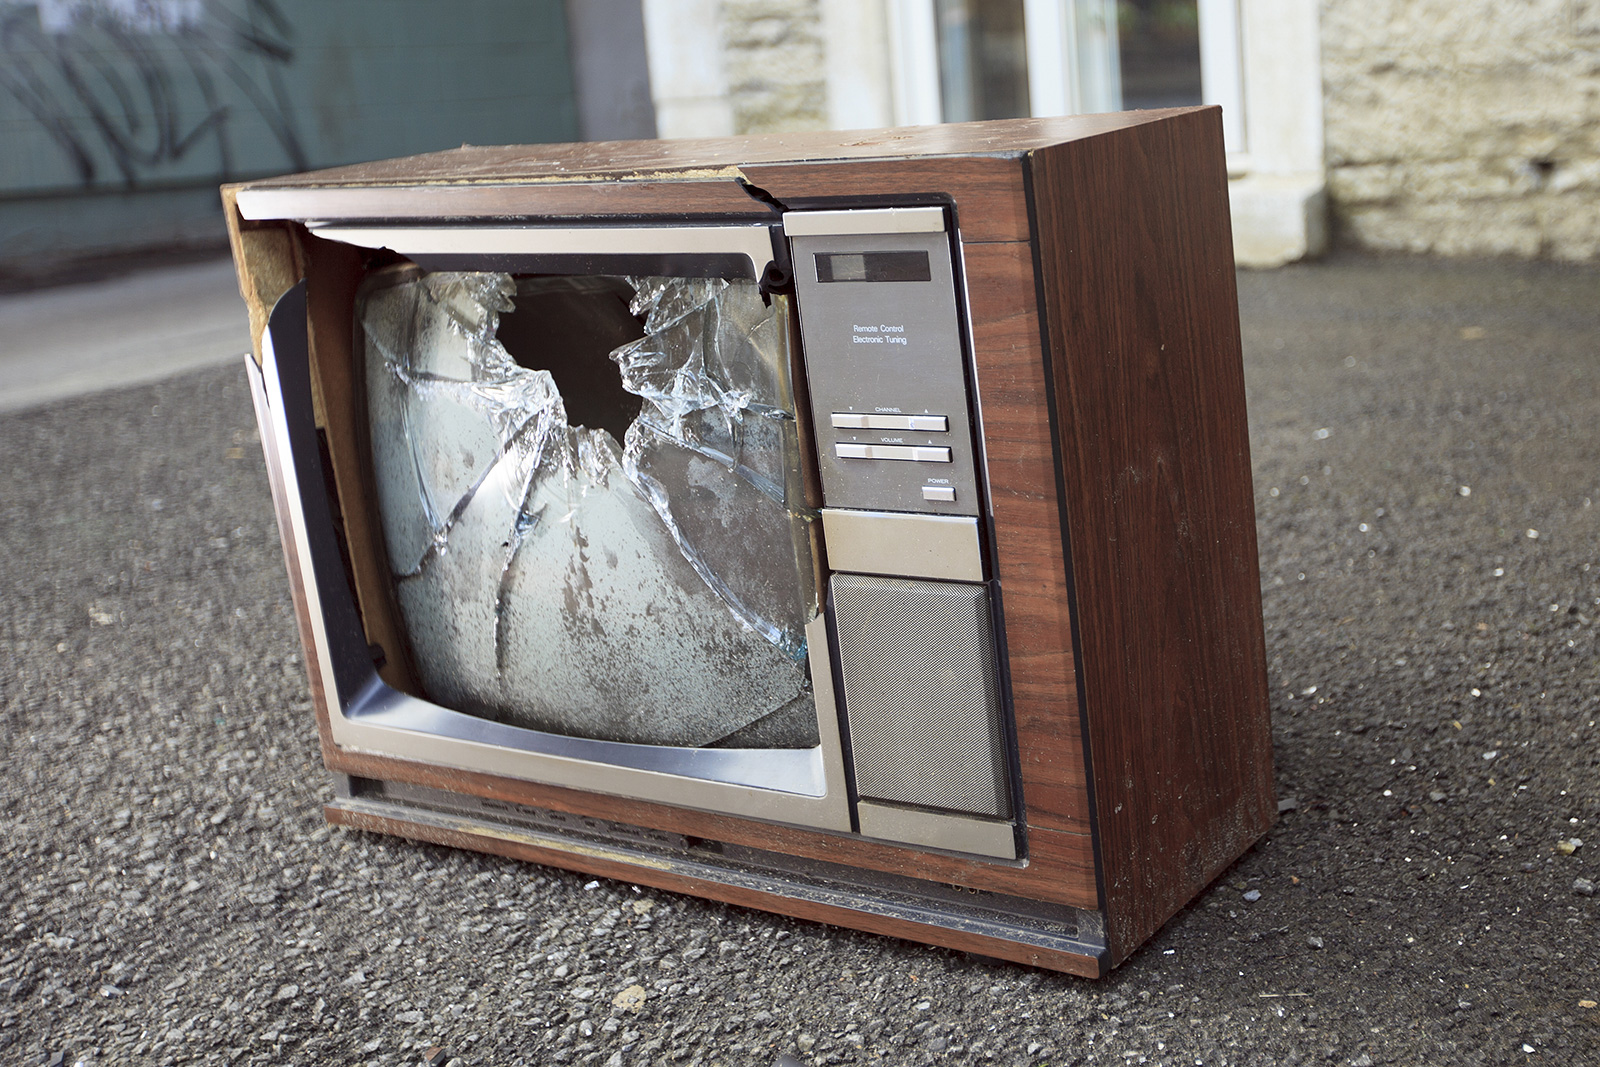 TV Destruction (Free Sounds)